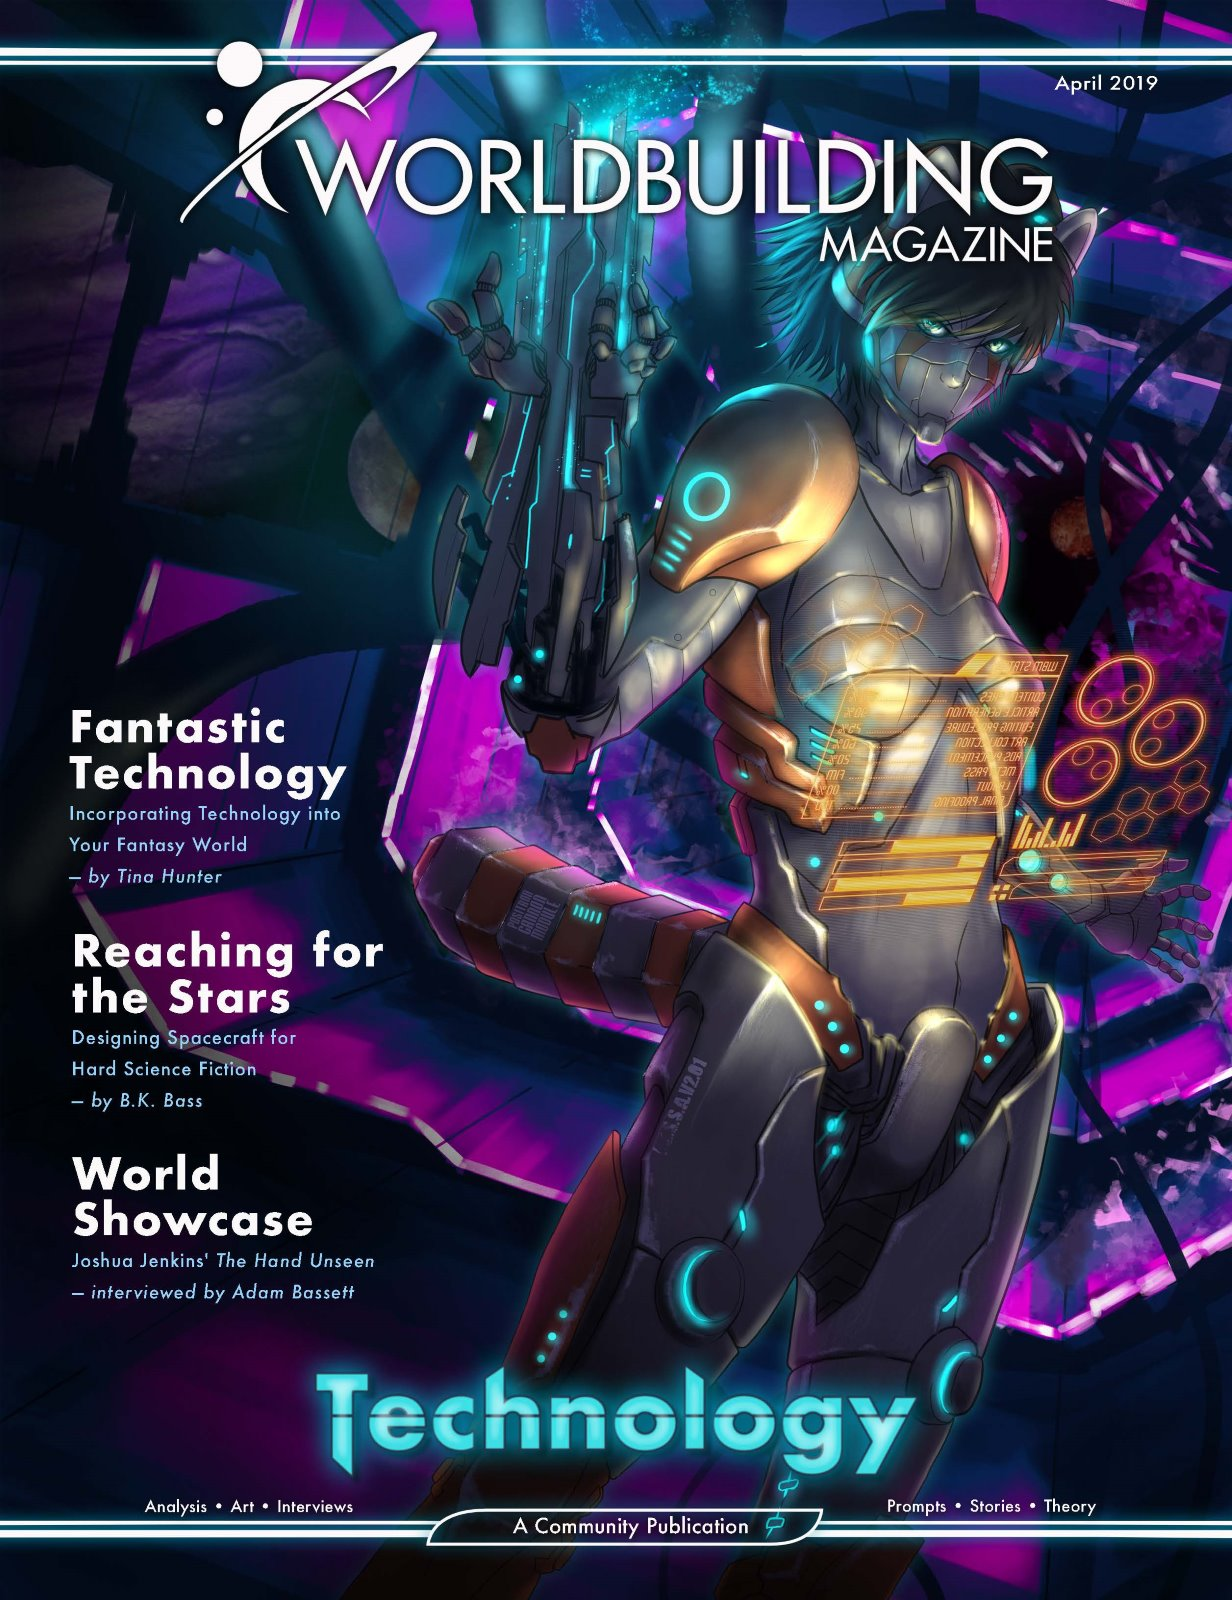 Worldbuilding Magazine Volume 3, Issue 2: Technology